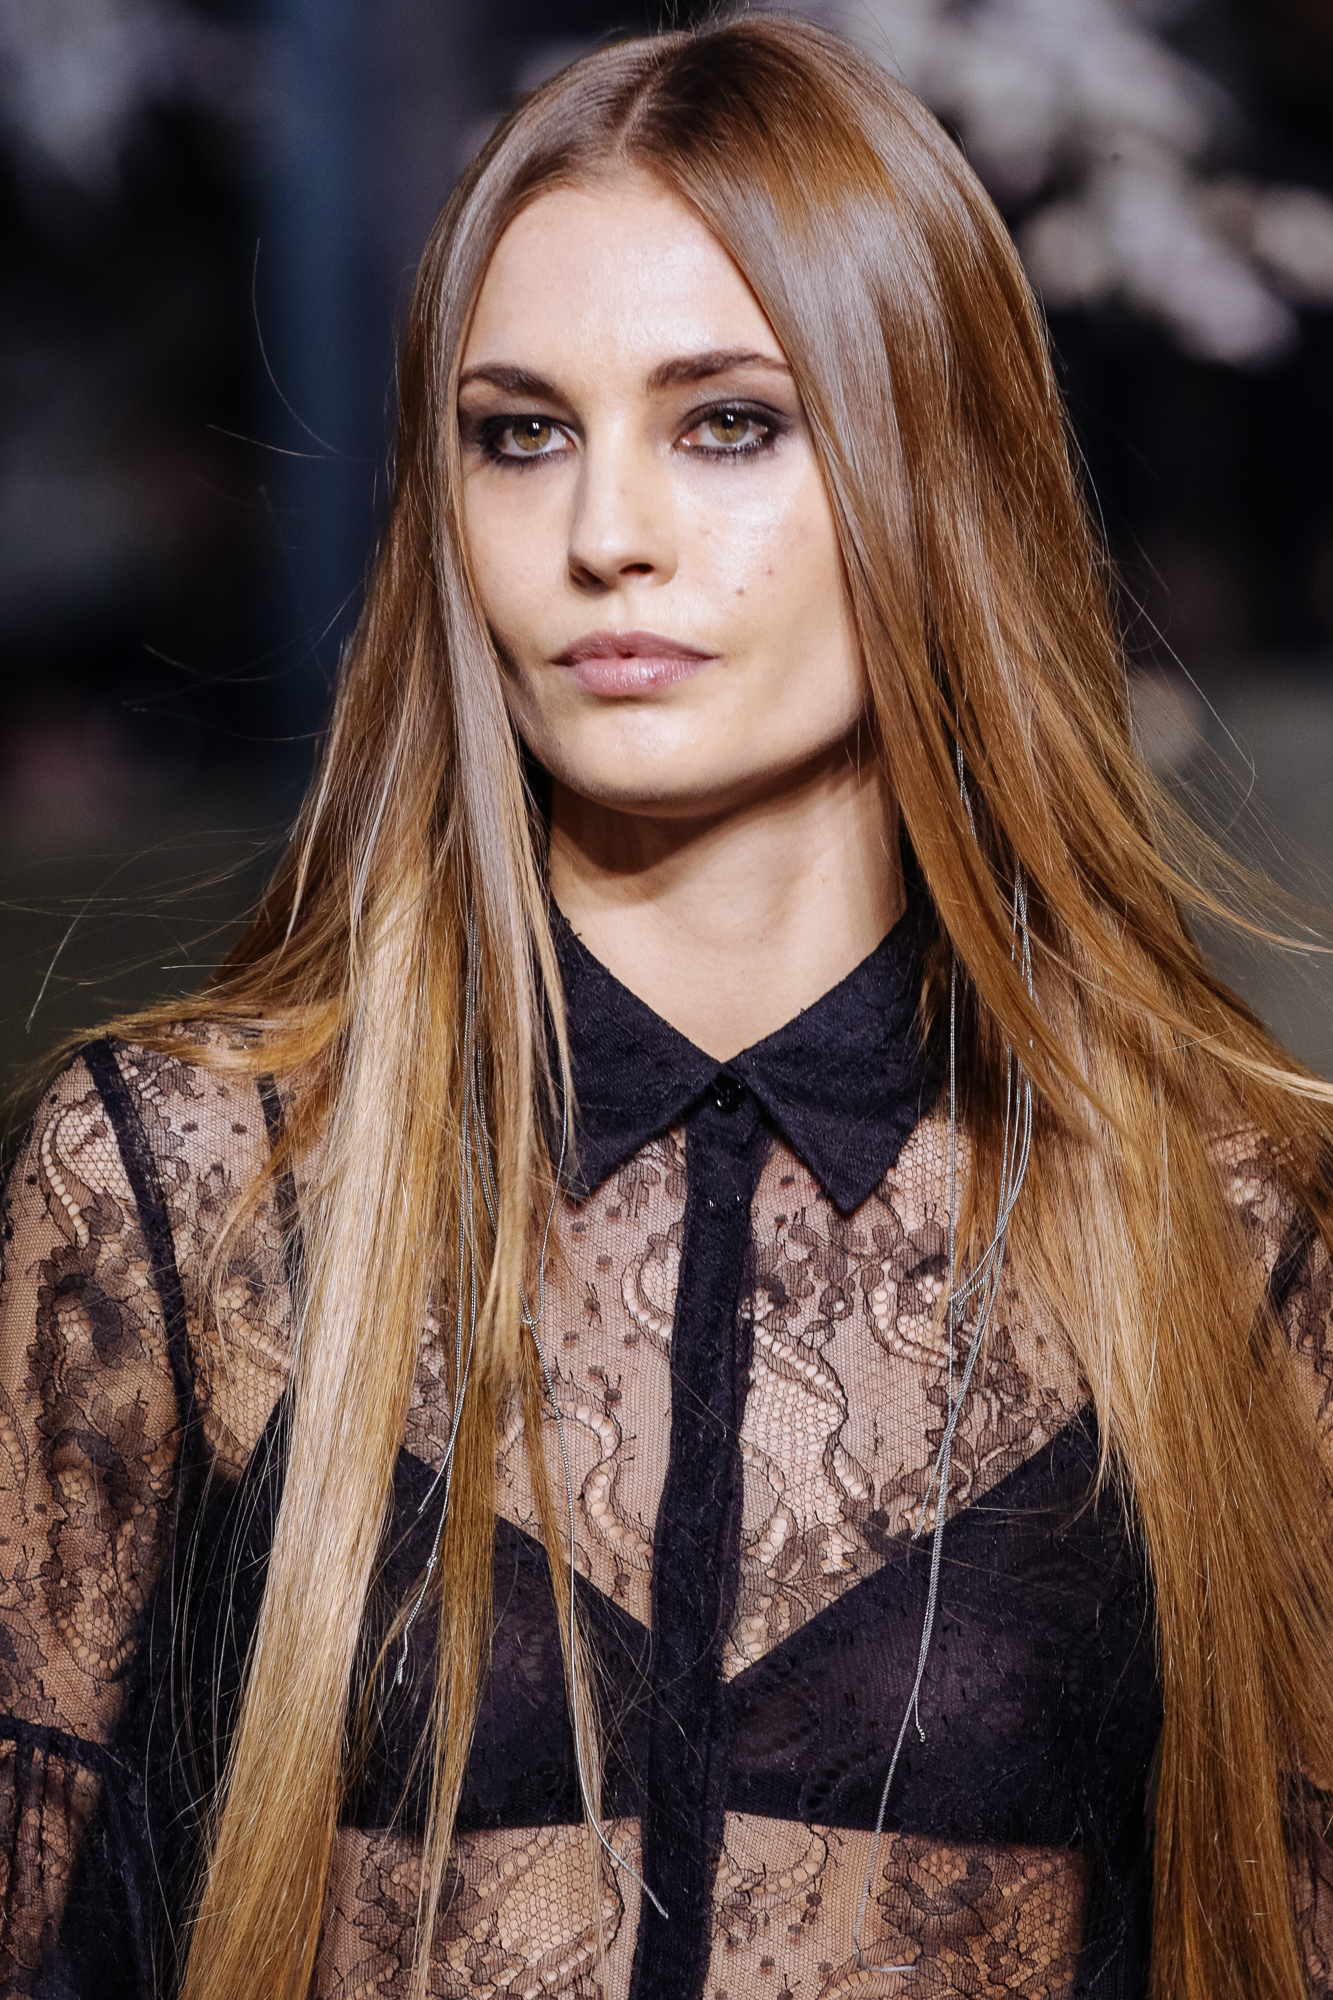 Beauty Trends Straight From H&M Catwalk In Paris Fashion Week